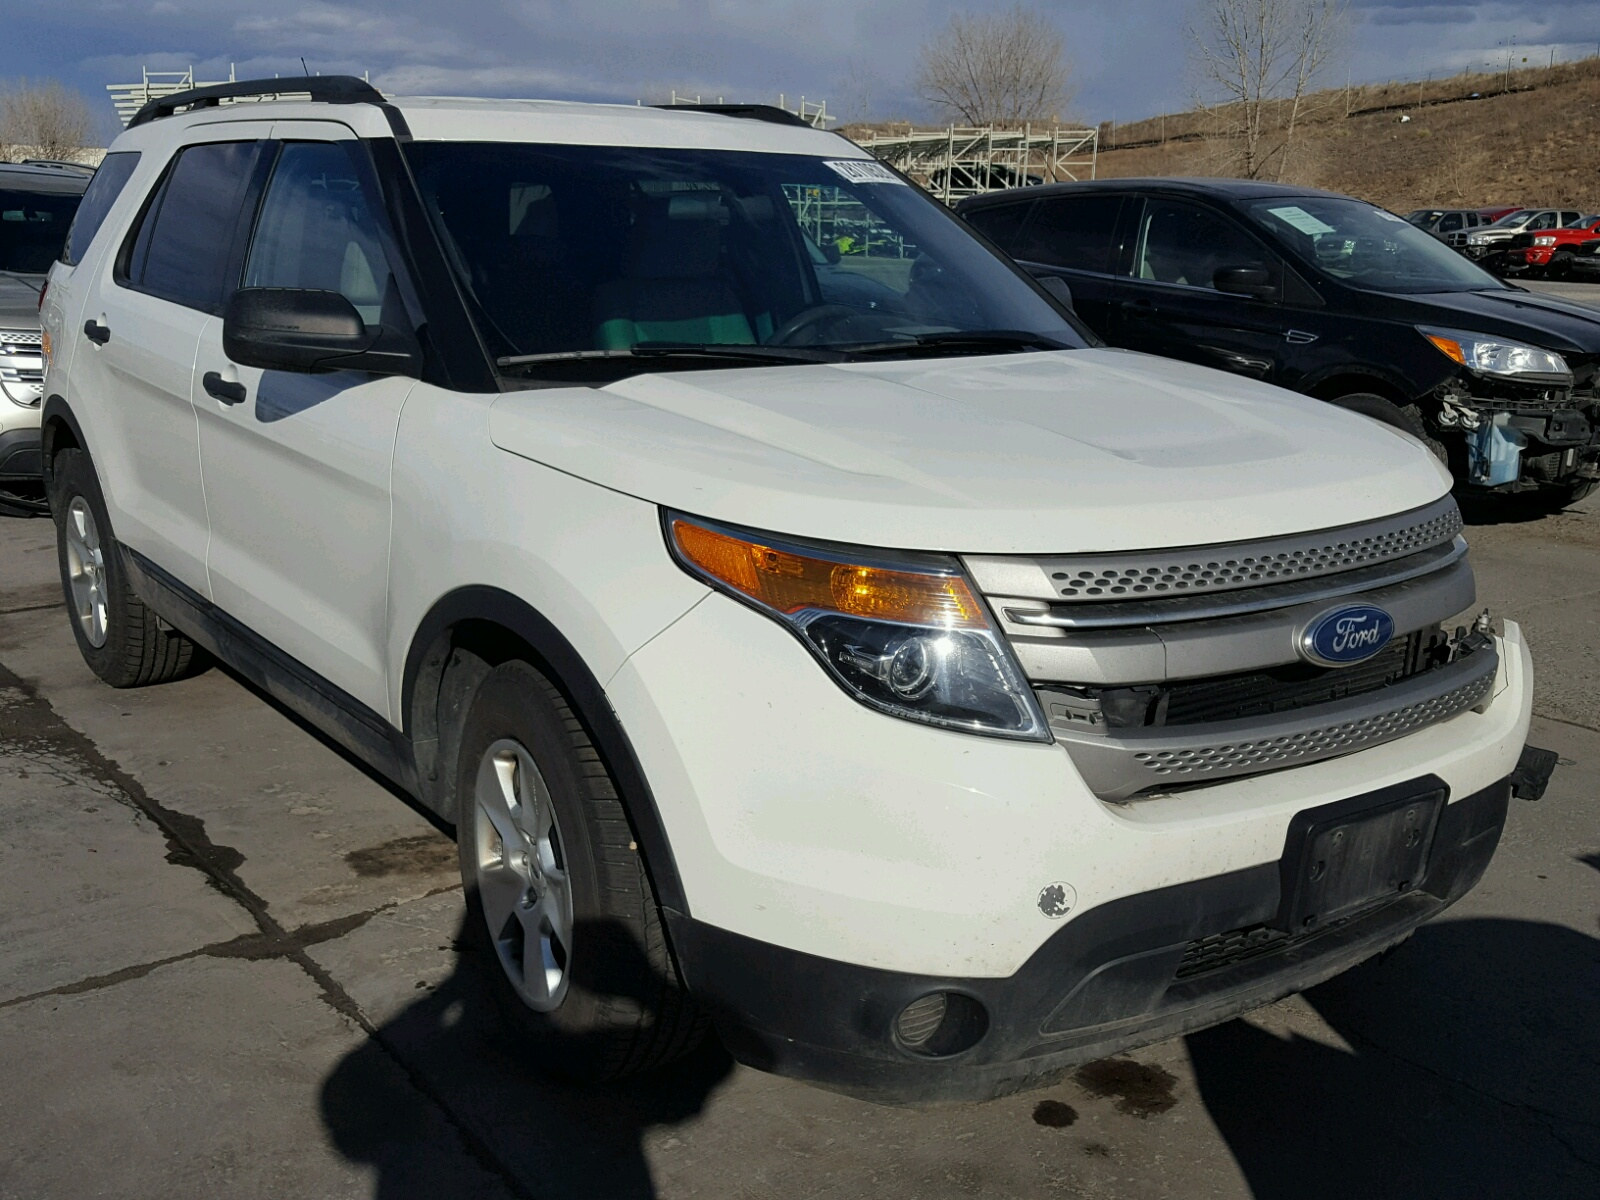 1fmhk7b93cga04746 2012 White Ford Explorer On Sale In Co Denver Sport 20l Left View